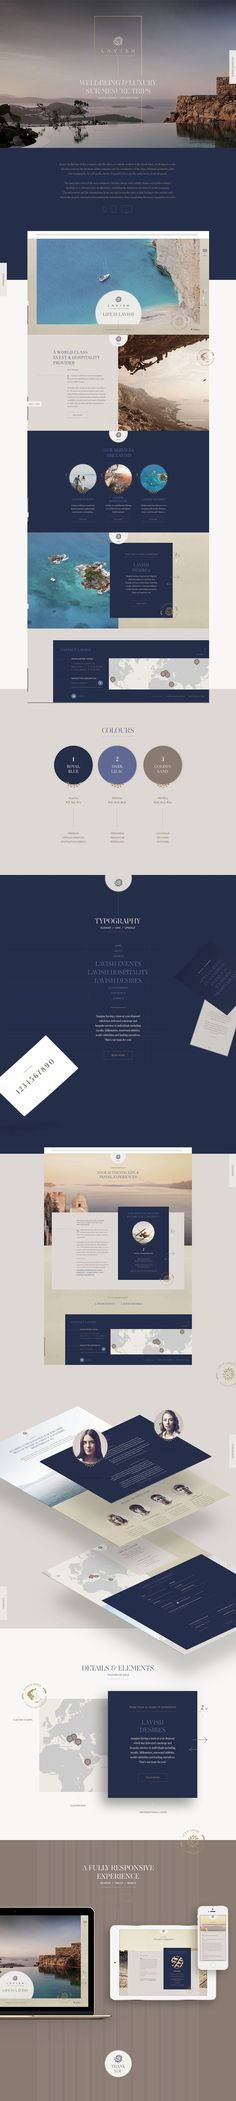 Lavish Website on Behance